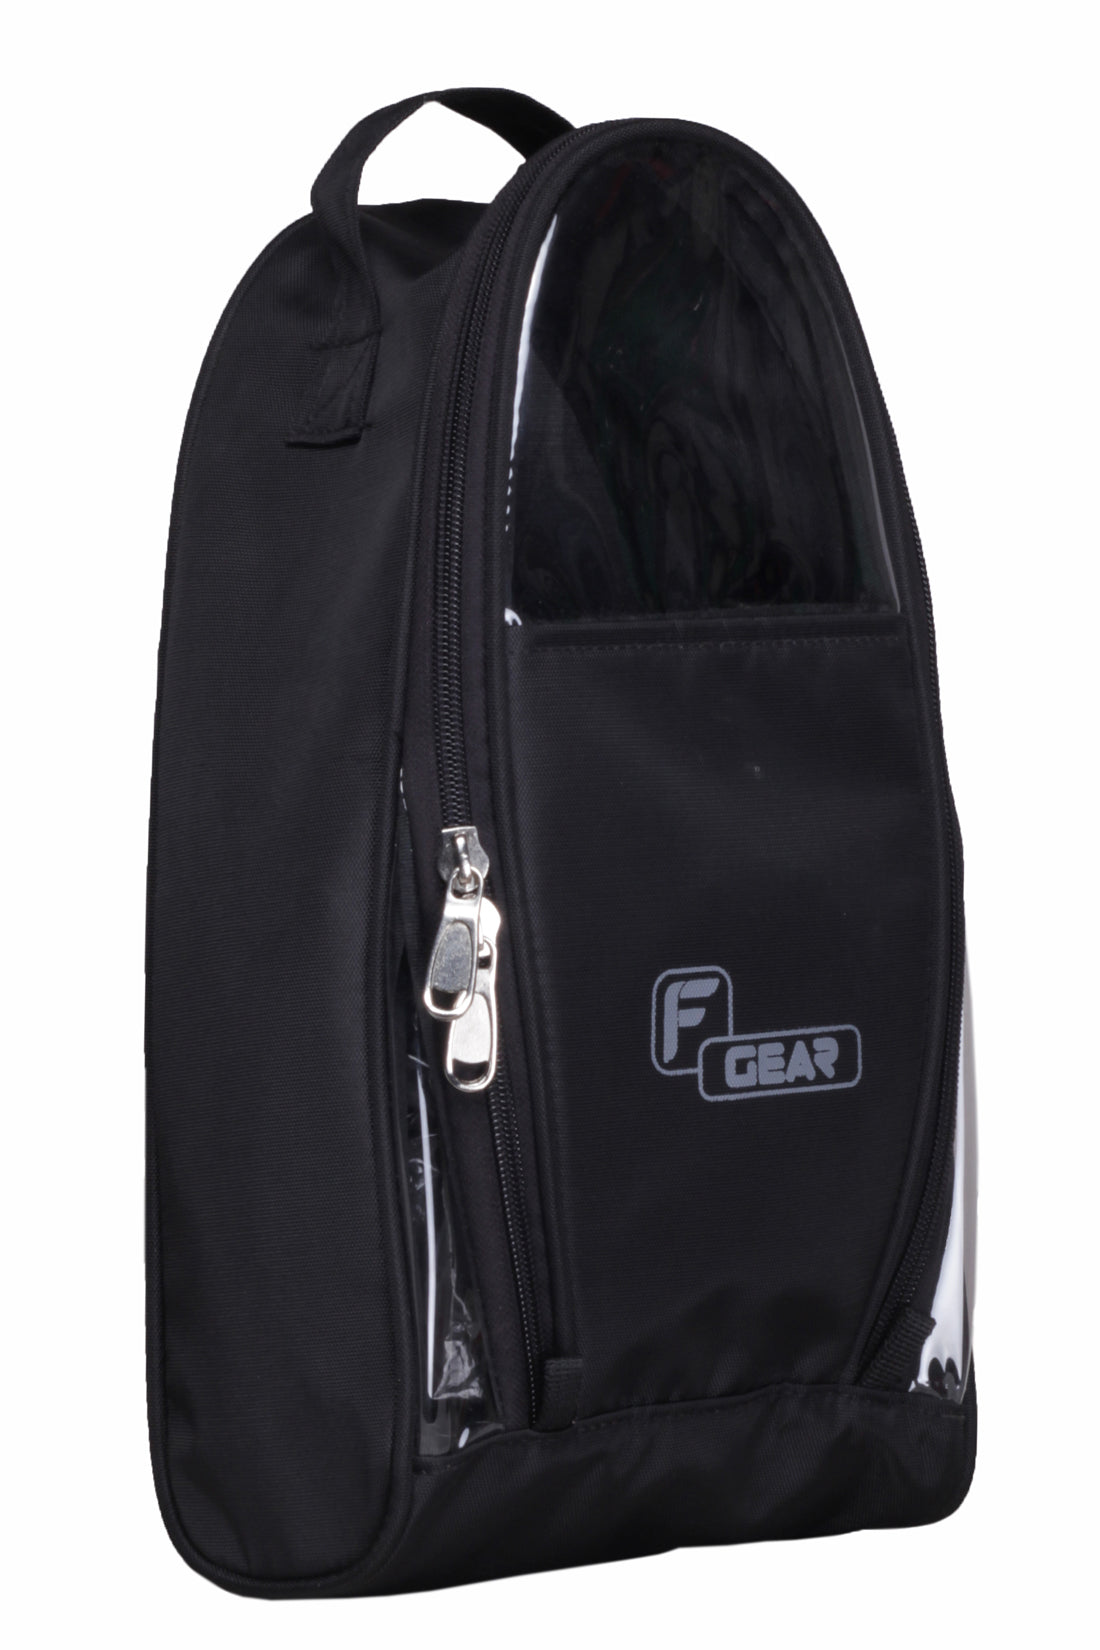 F Gear Supio Polyester 8 Ltrs Black Shoe Bag (2276)